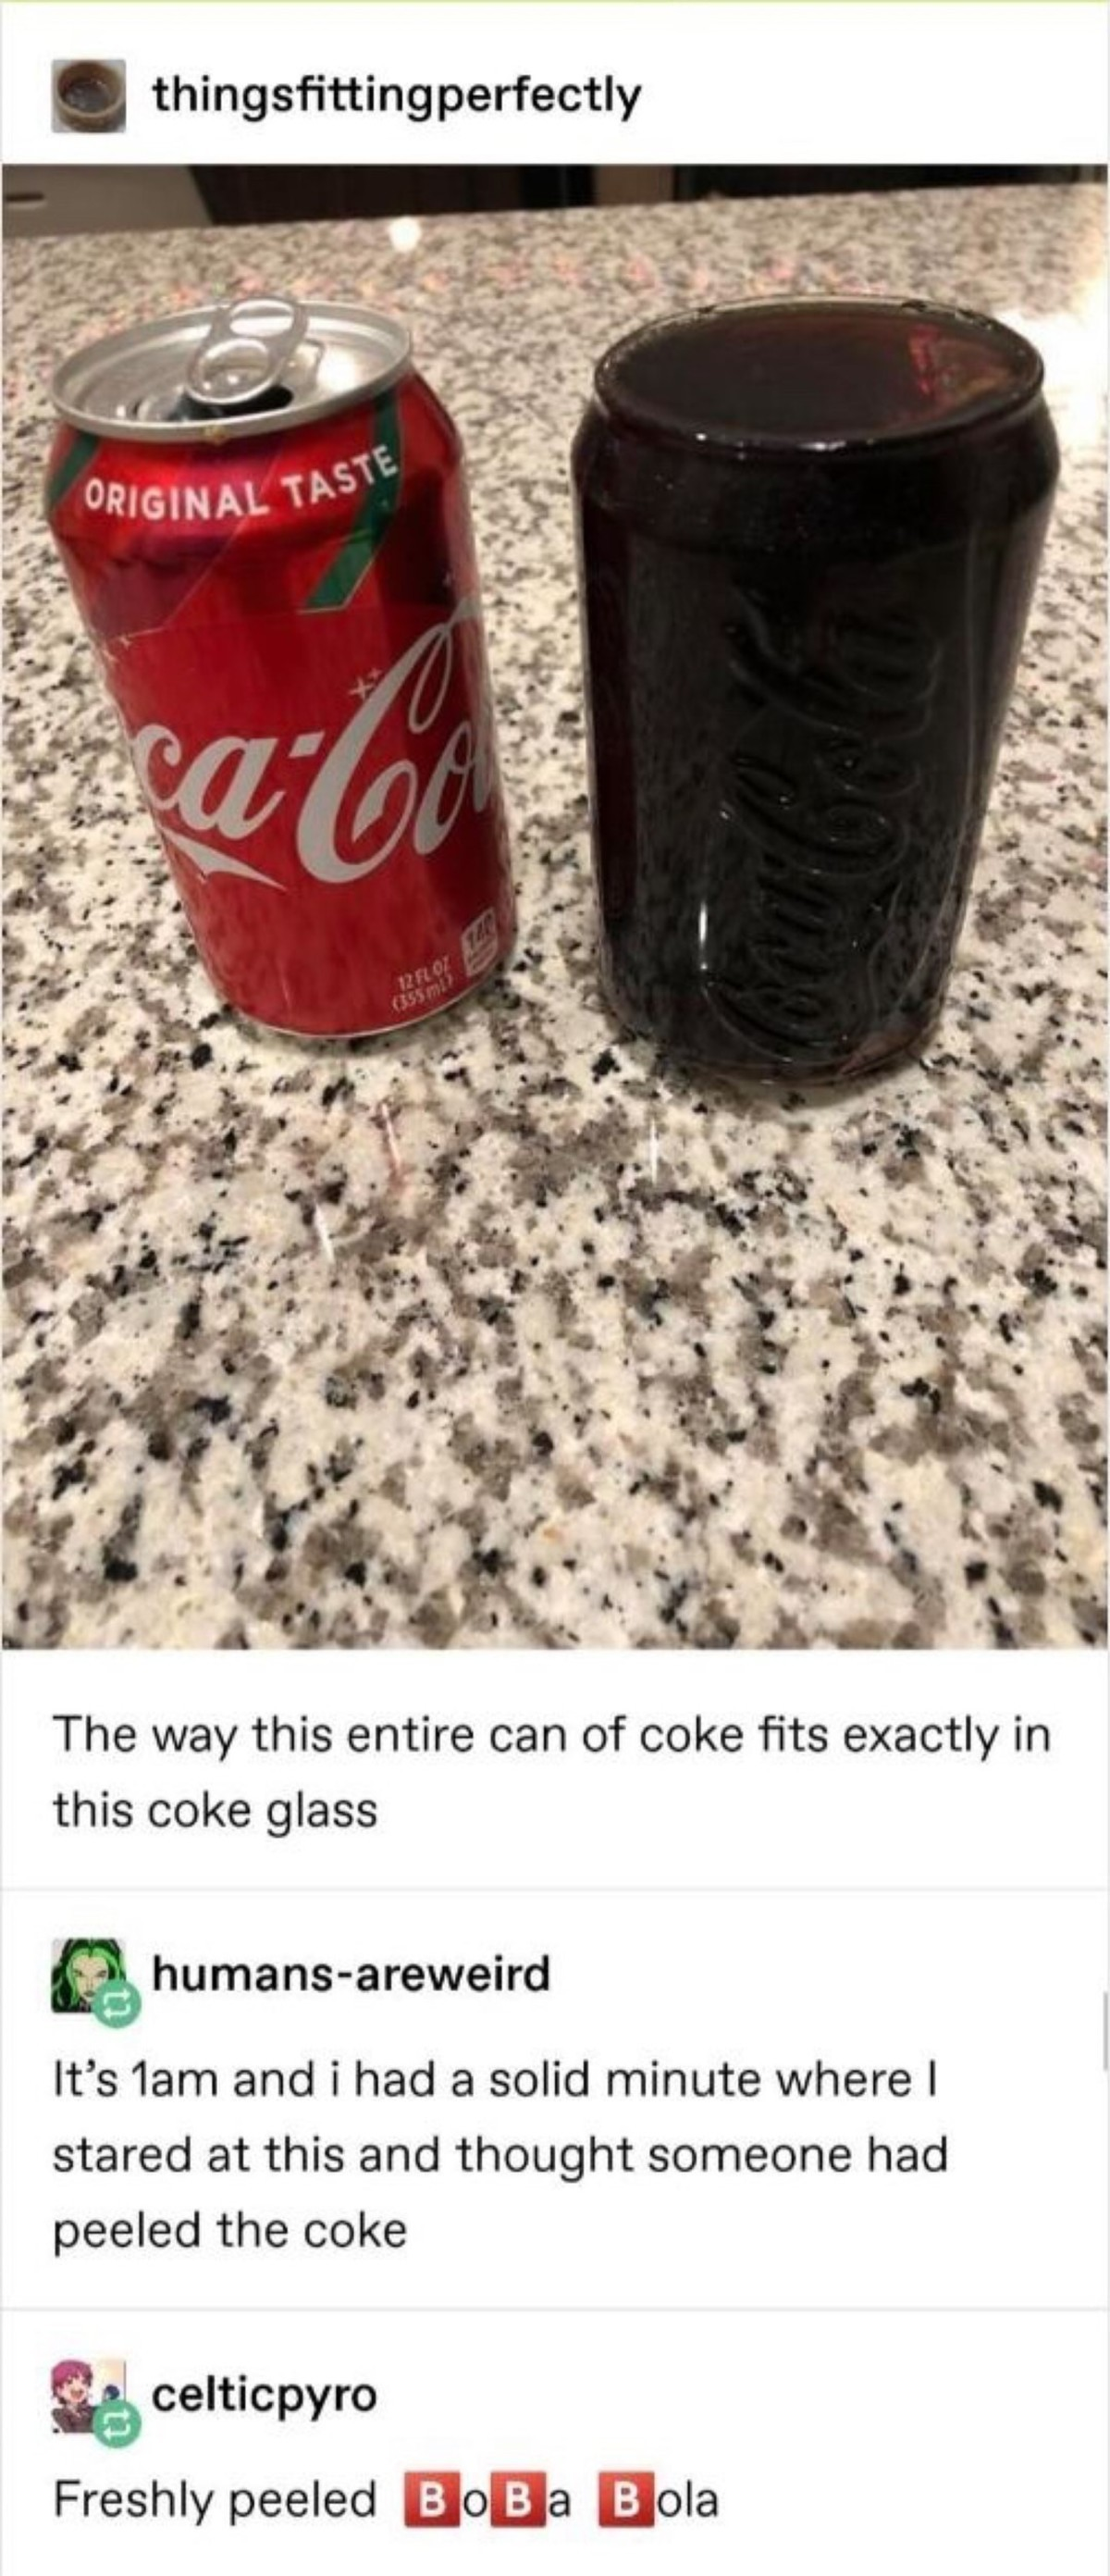 Coke. .. its a glass designed to be the exact same shape of the can what did you expect?